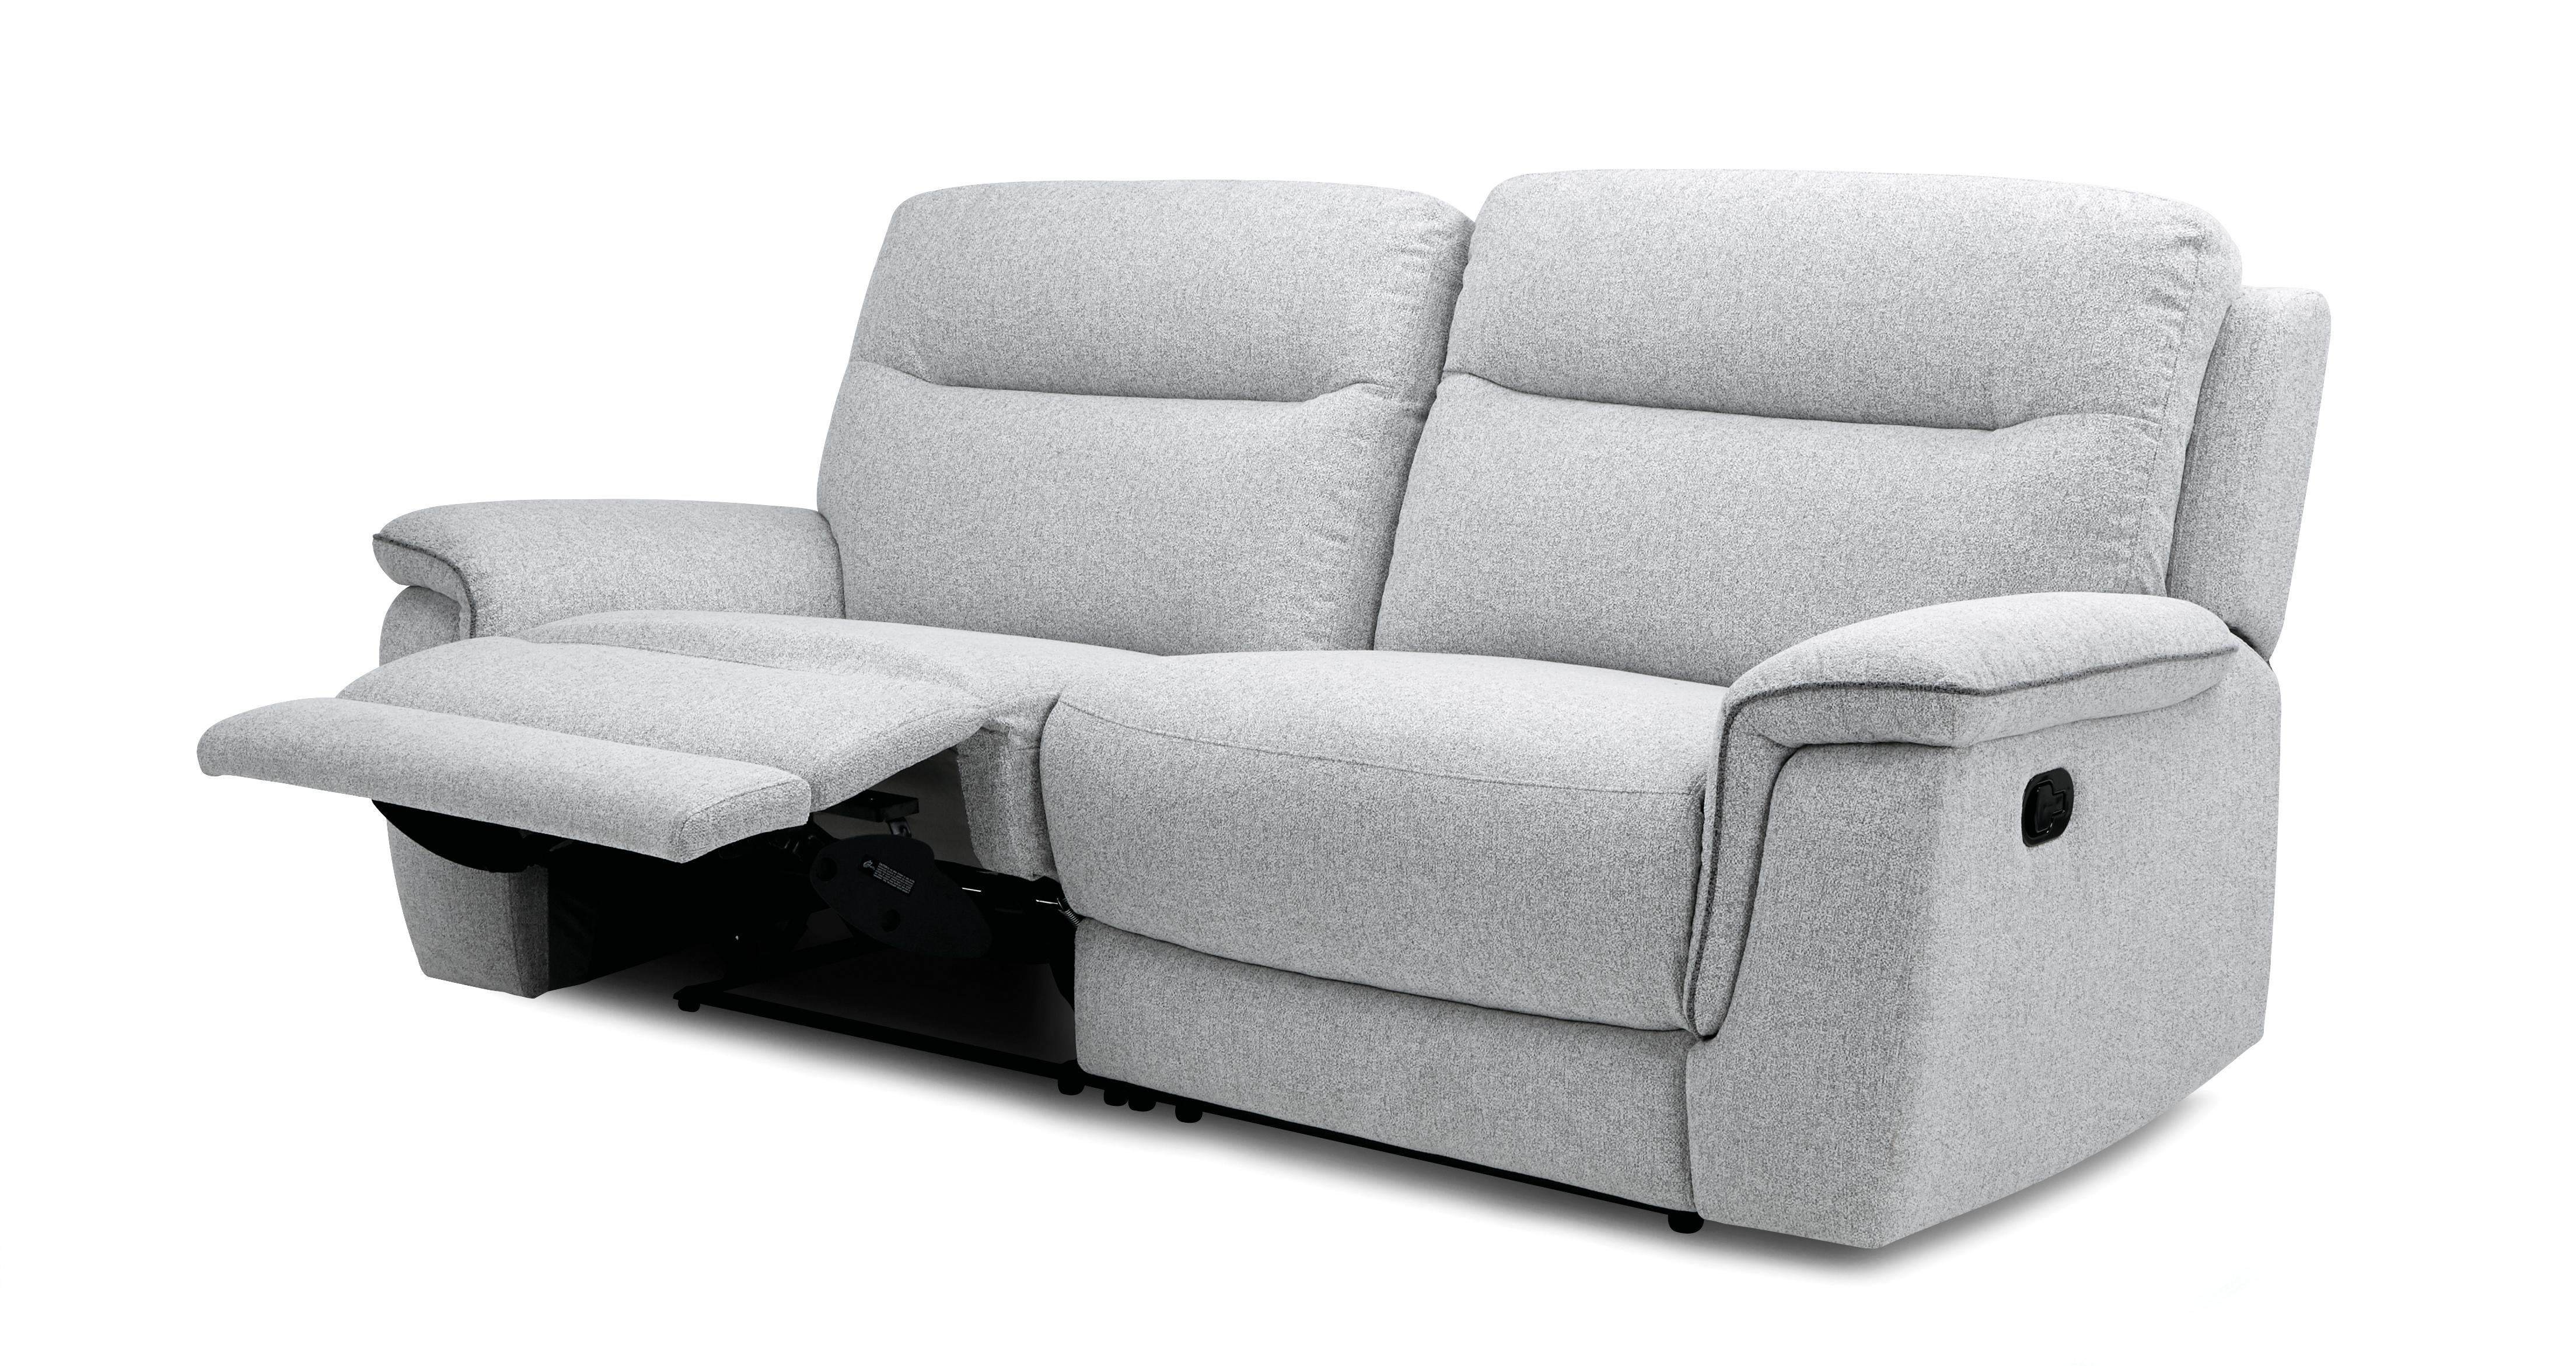 Bootle: 3 Seater Manual Recliner Sofa